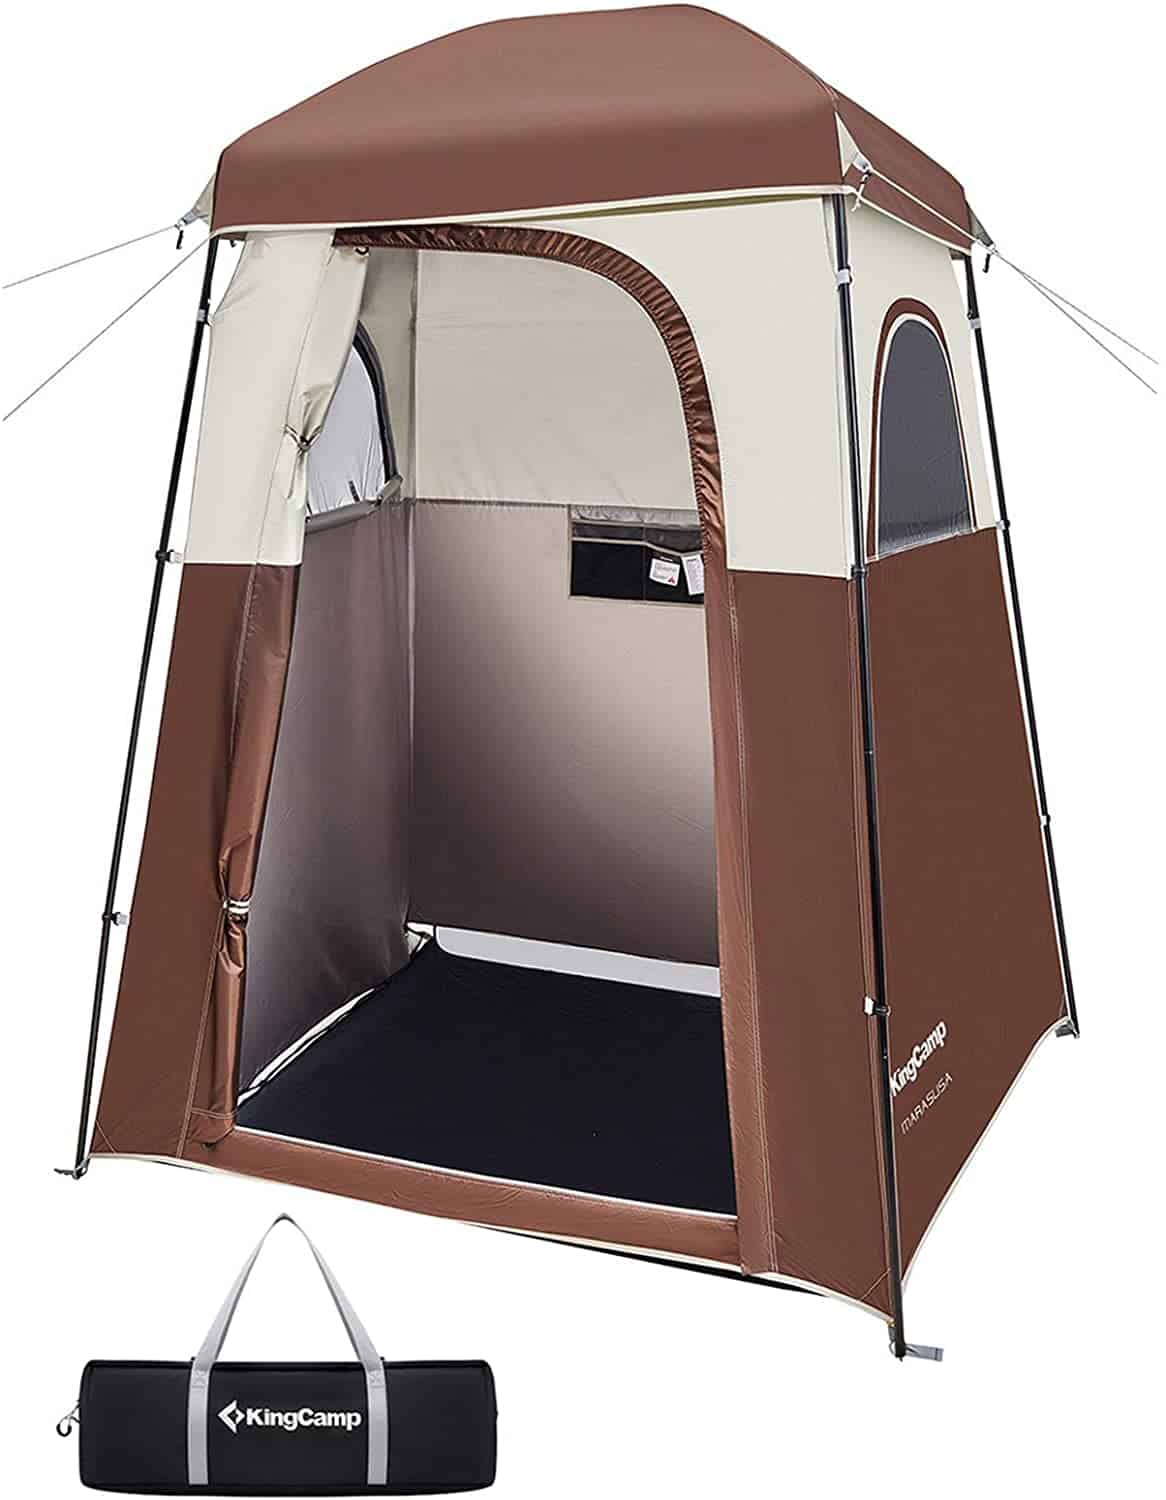 Kingcamp Oversize Extra Wide Camping Privacy Shelter Tent, Portable Outdoor Shower Tent Dressing Changing Room with Carry Bag, Camp Toilet, Easy Set Up